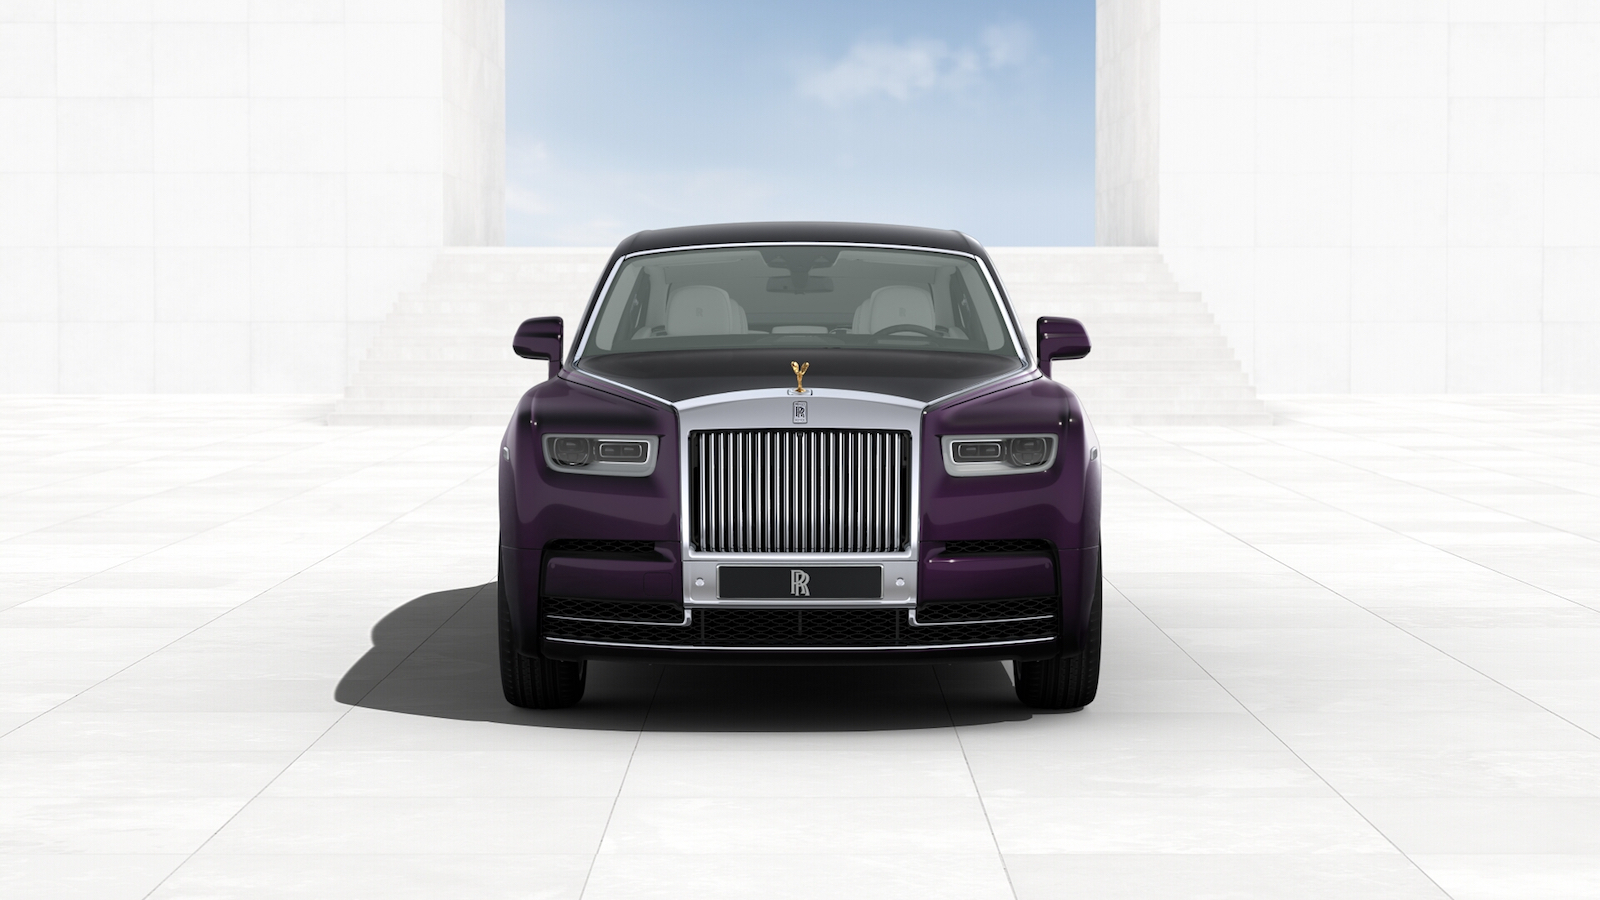 You Can Now Configure Your Own 2018 Rolls-Royce Phantom ...